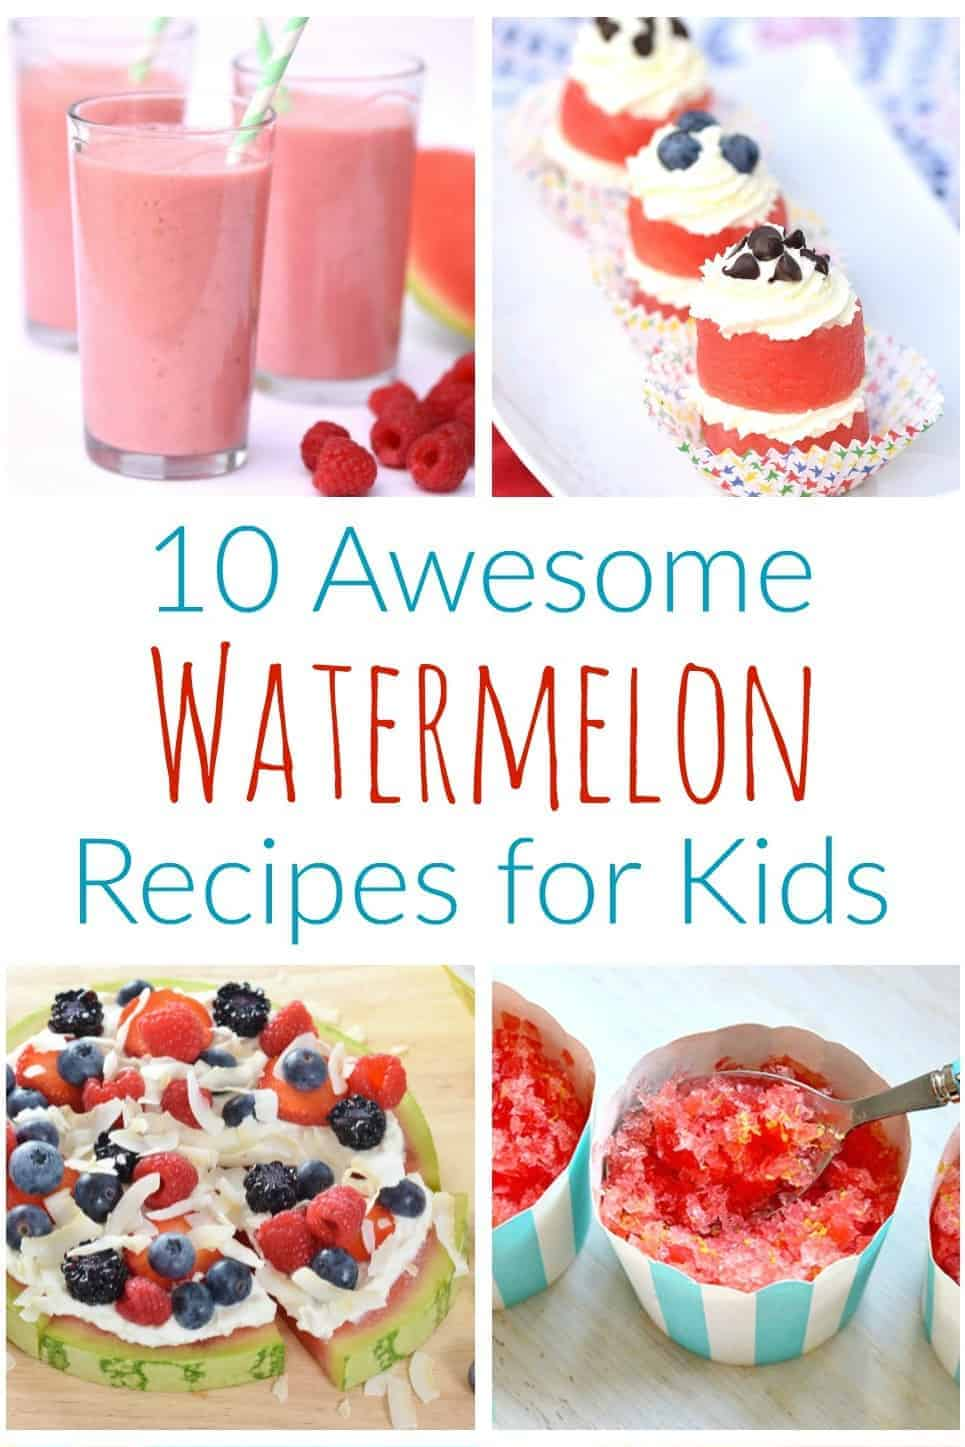 10 Fun Watermelon Recipes for kids - cute and healthy snack and summer dessert ideas that are perfect for party food and BBQs too #watermelon #summerfood #kidsfood #healthykids #partyfood #healthysnacks #snacks #barbeque #summerparty #summer #summerfun #fruit #melon #familyfood